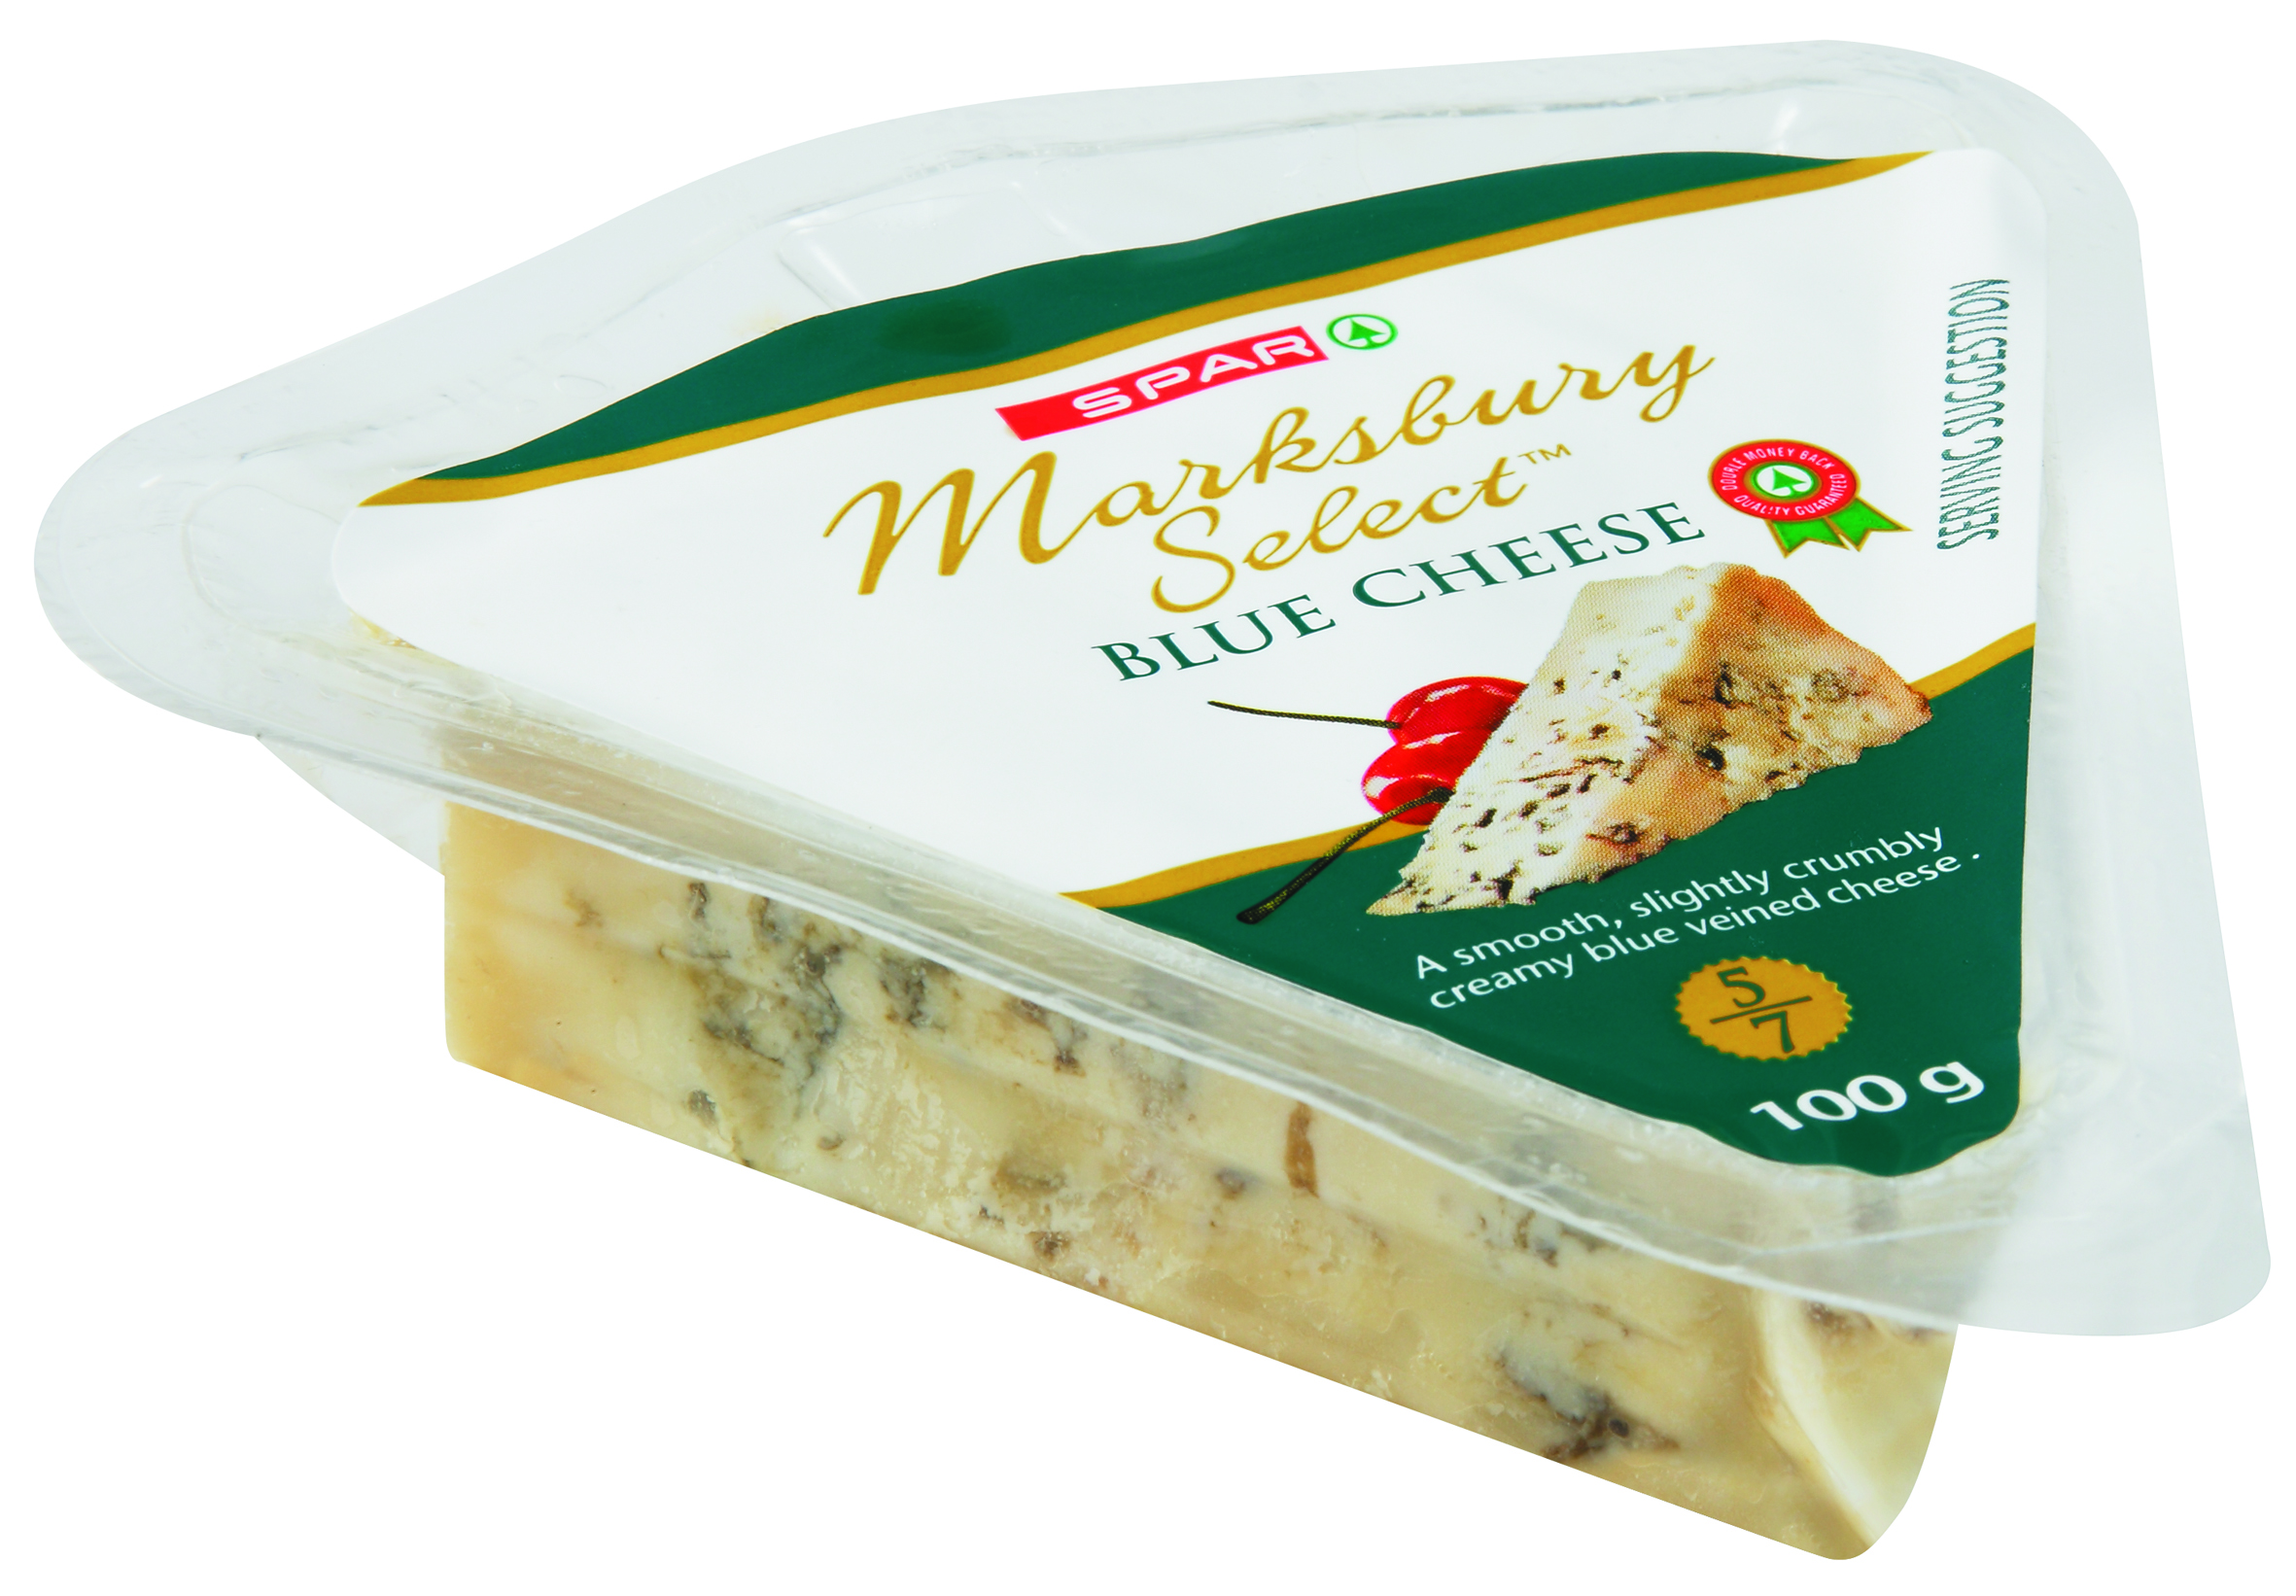 marksbury select cheese blue